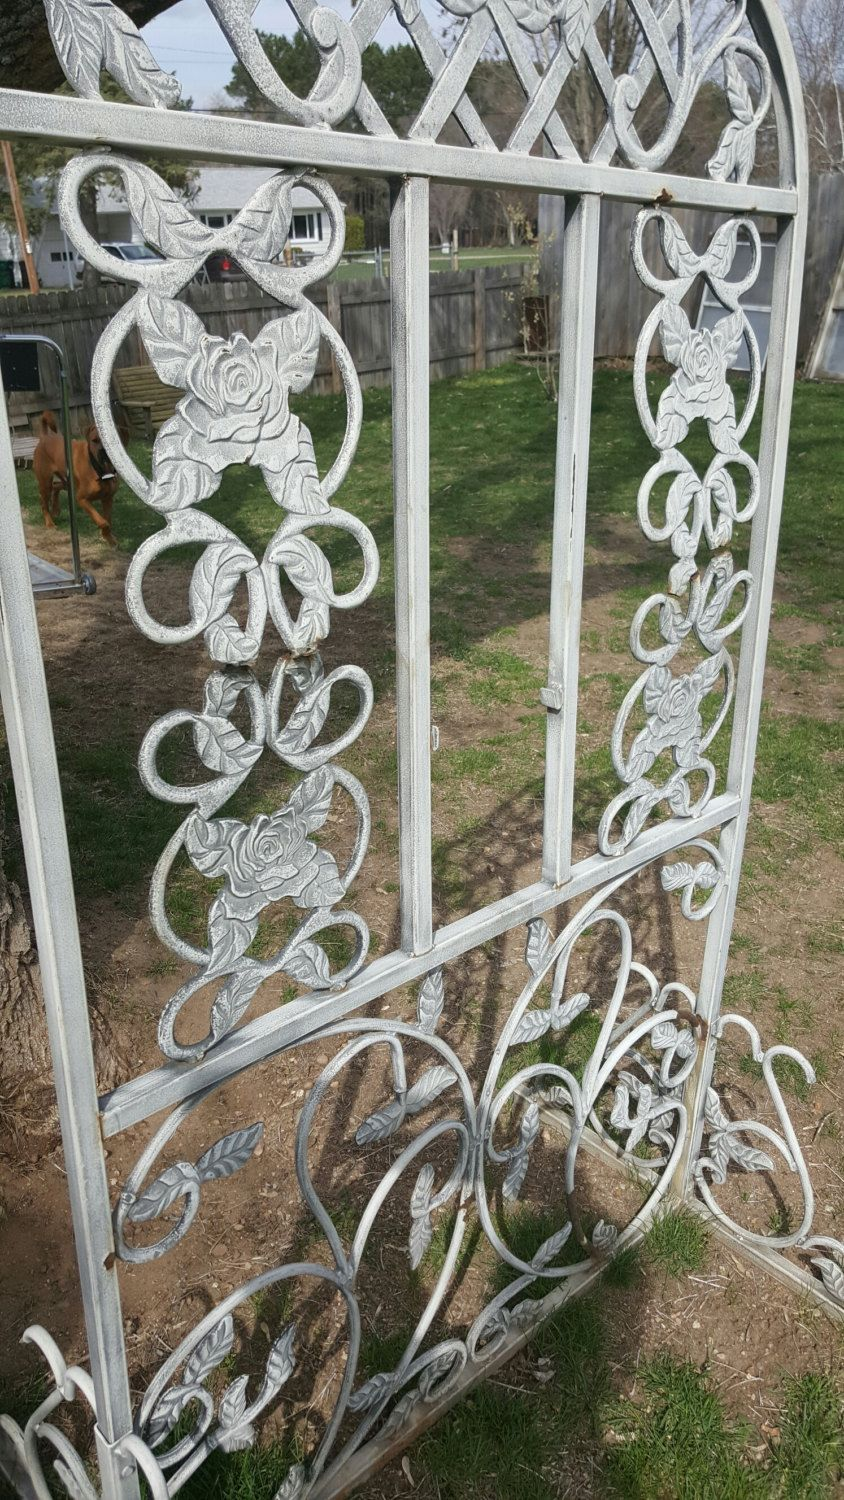 vintage garden trellis cast iron garden decor flower antique